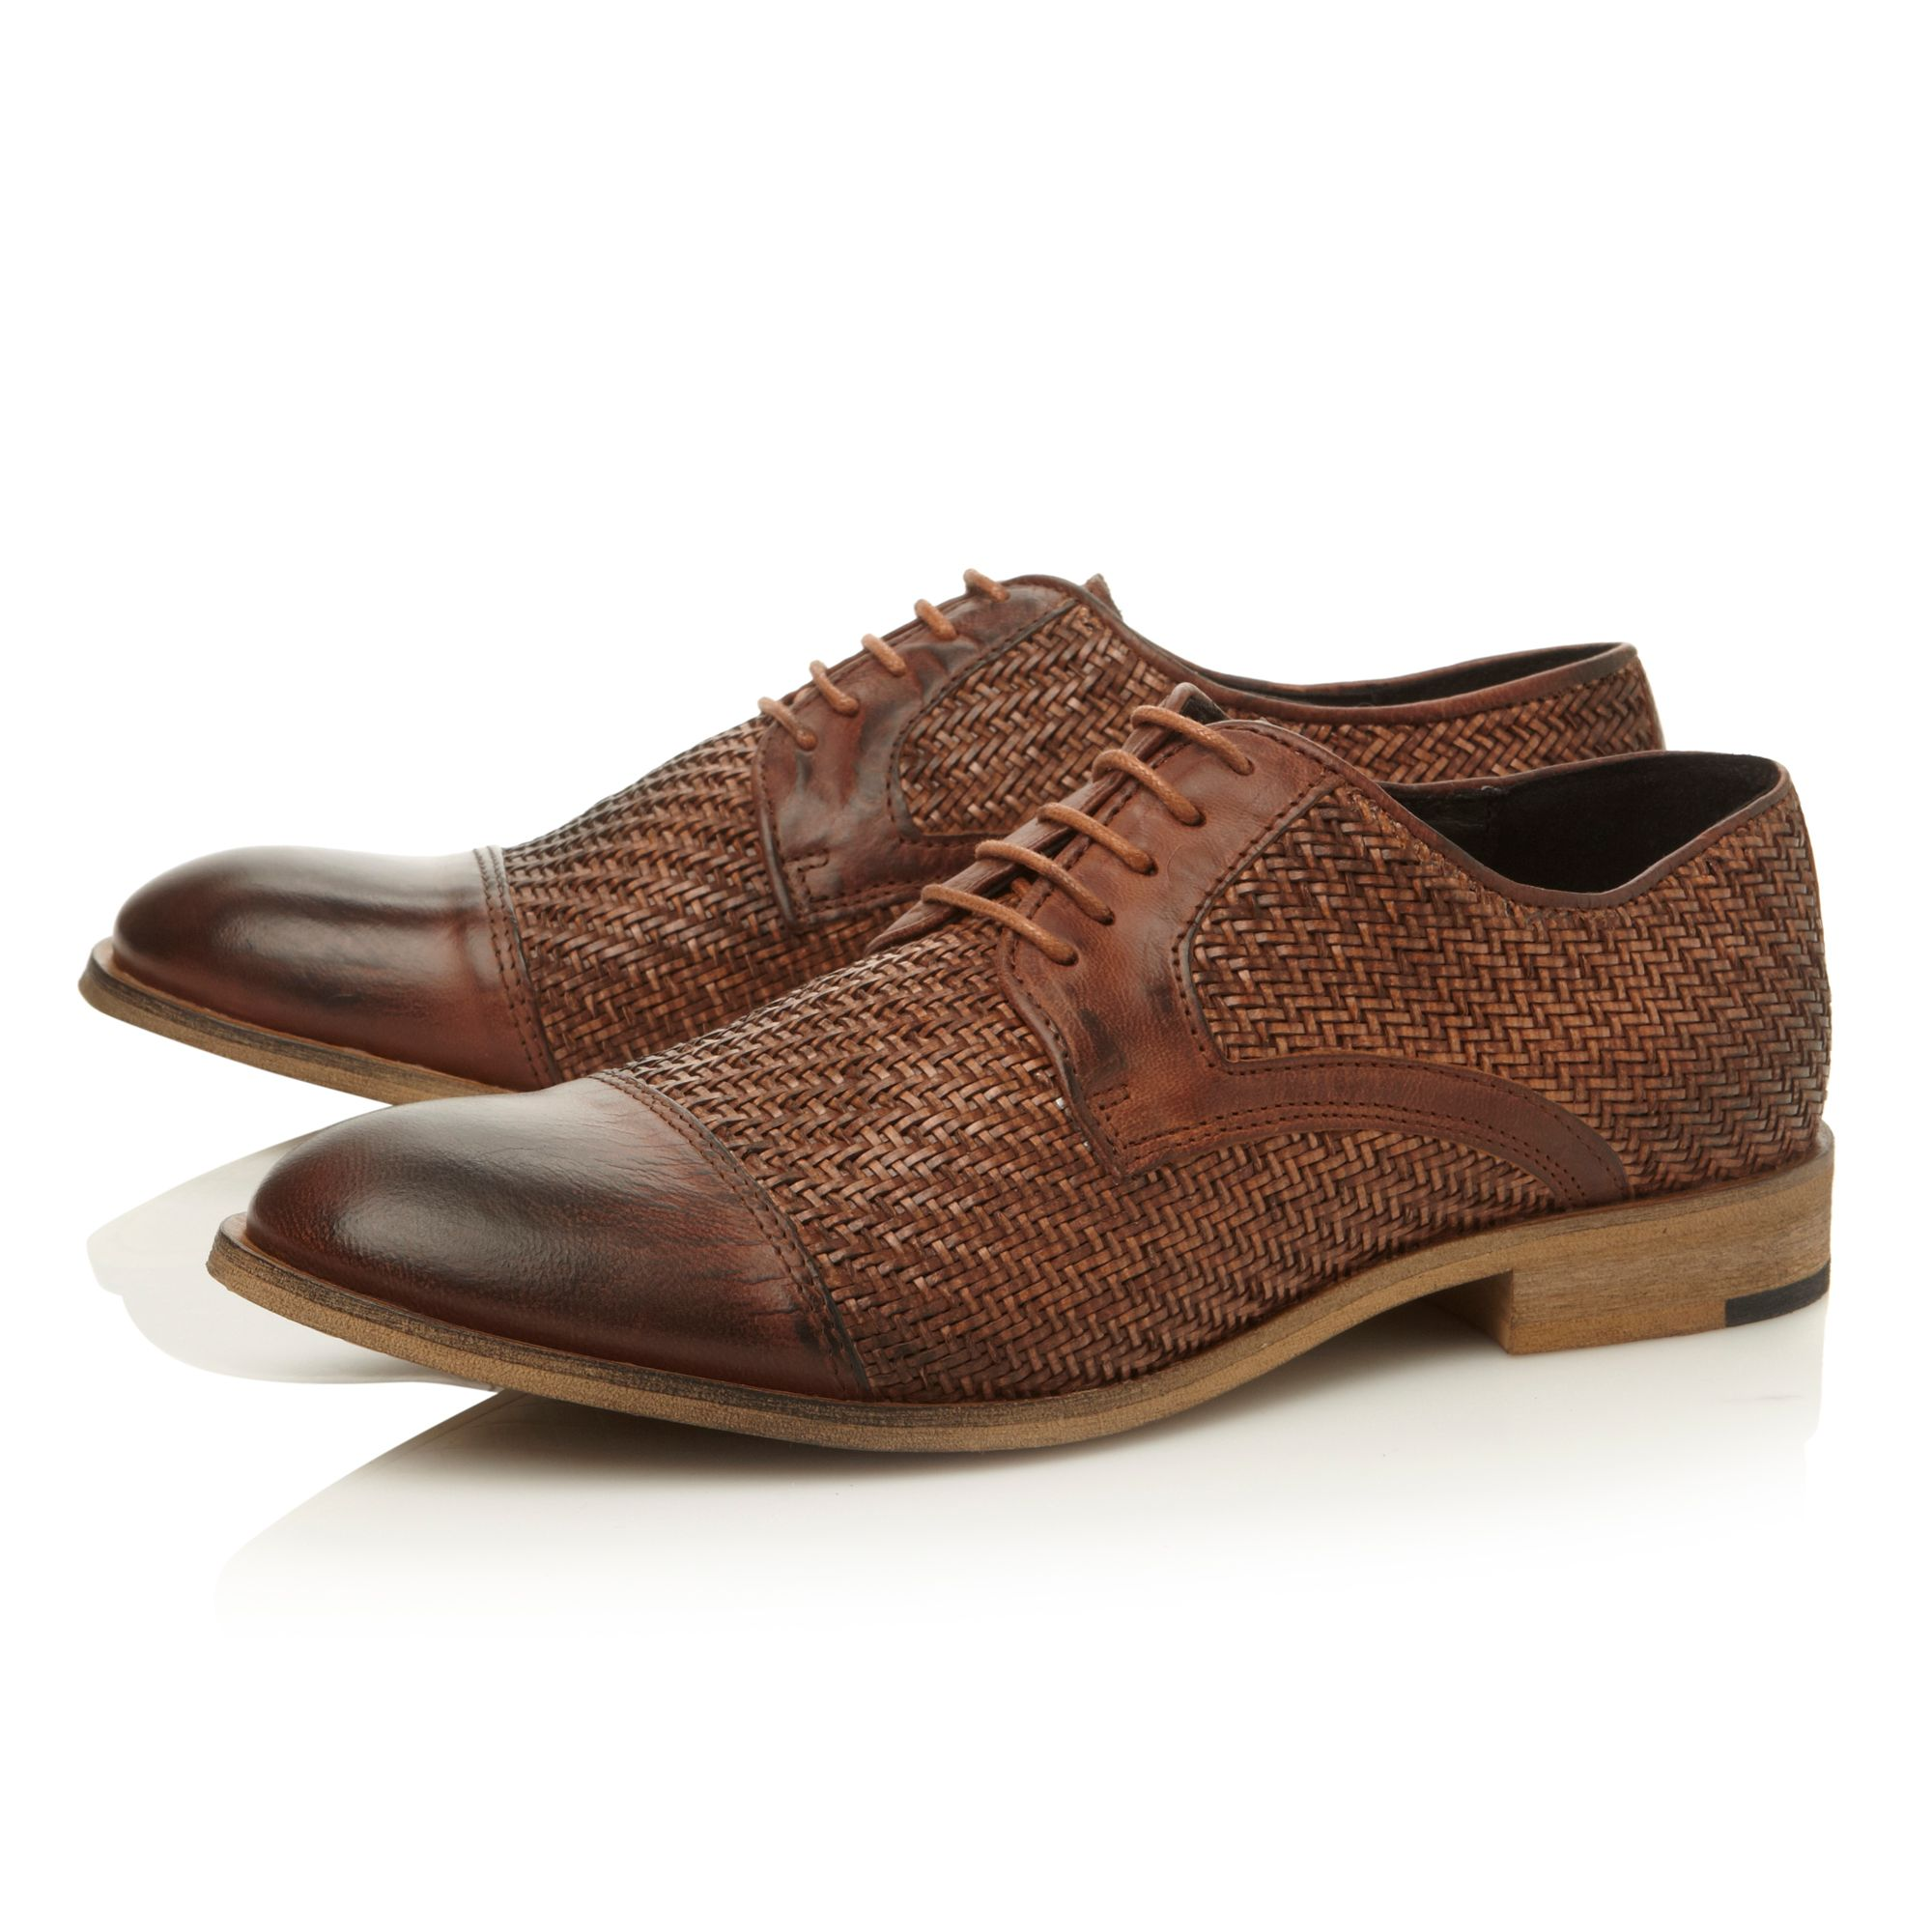 Baskett lace up woven gibson shoes